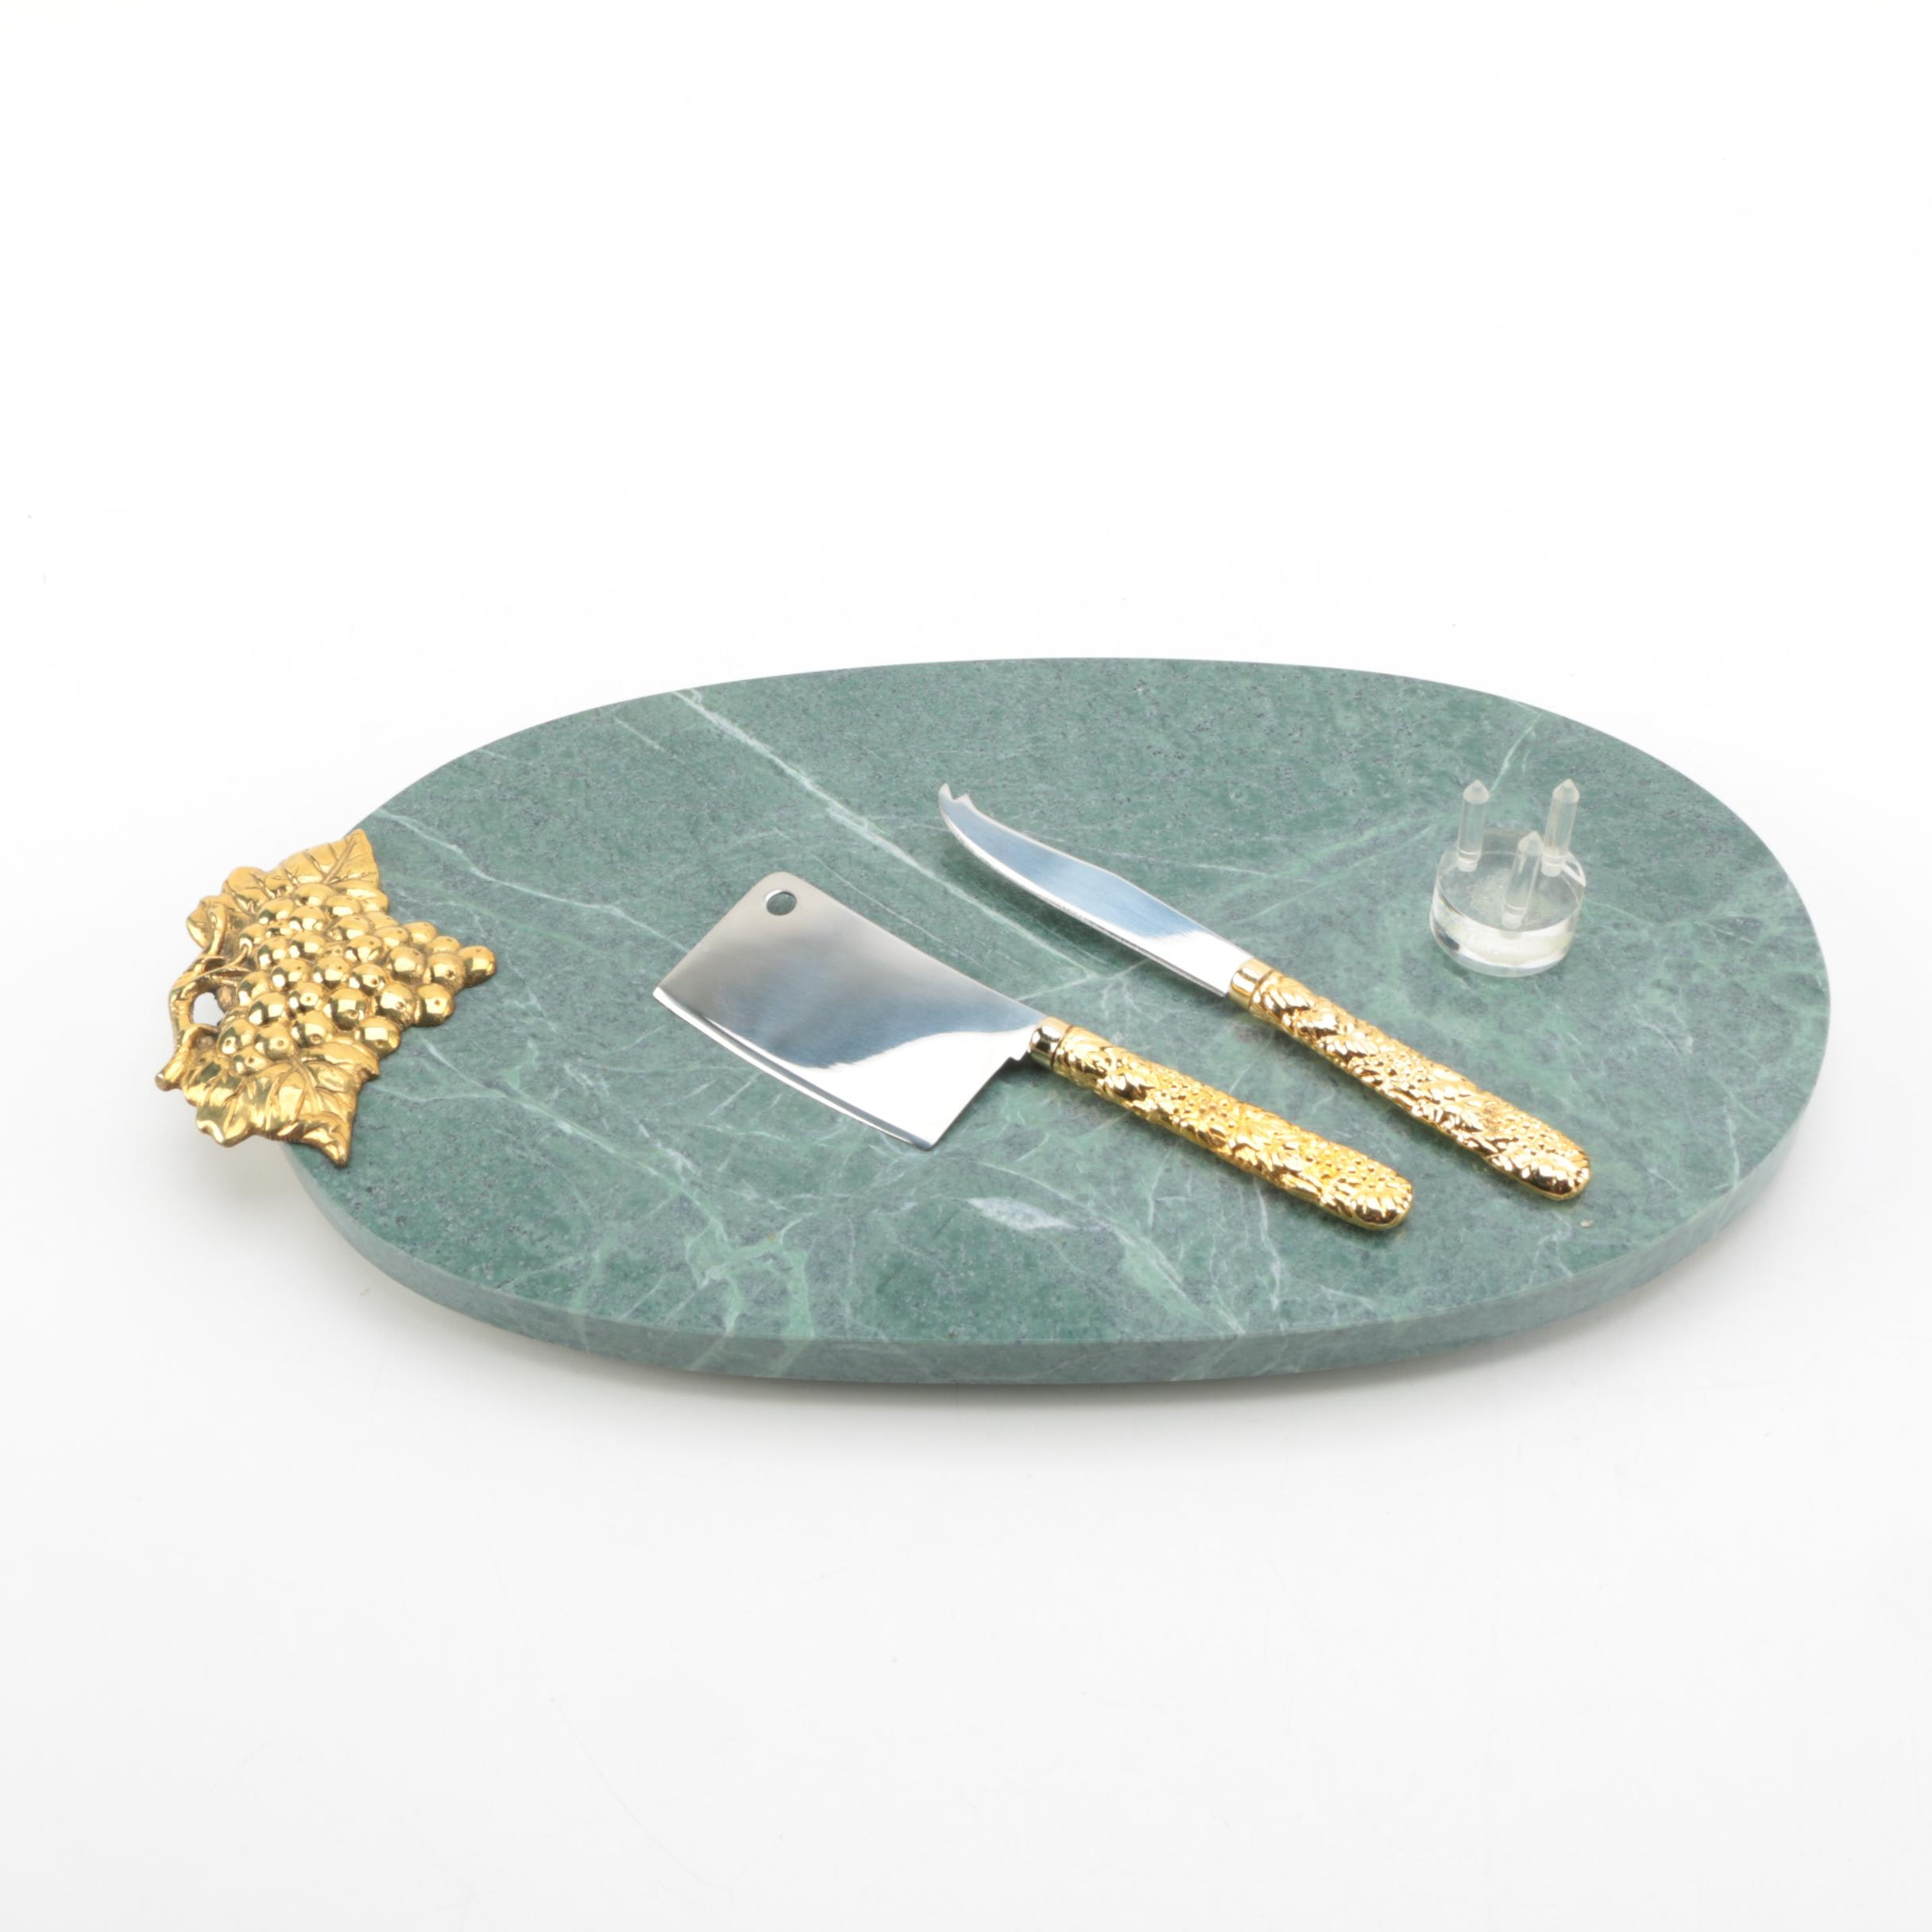 Marble Cheese Serving Set